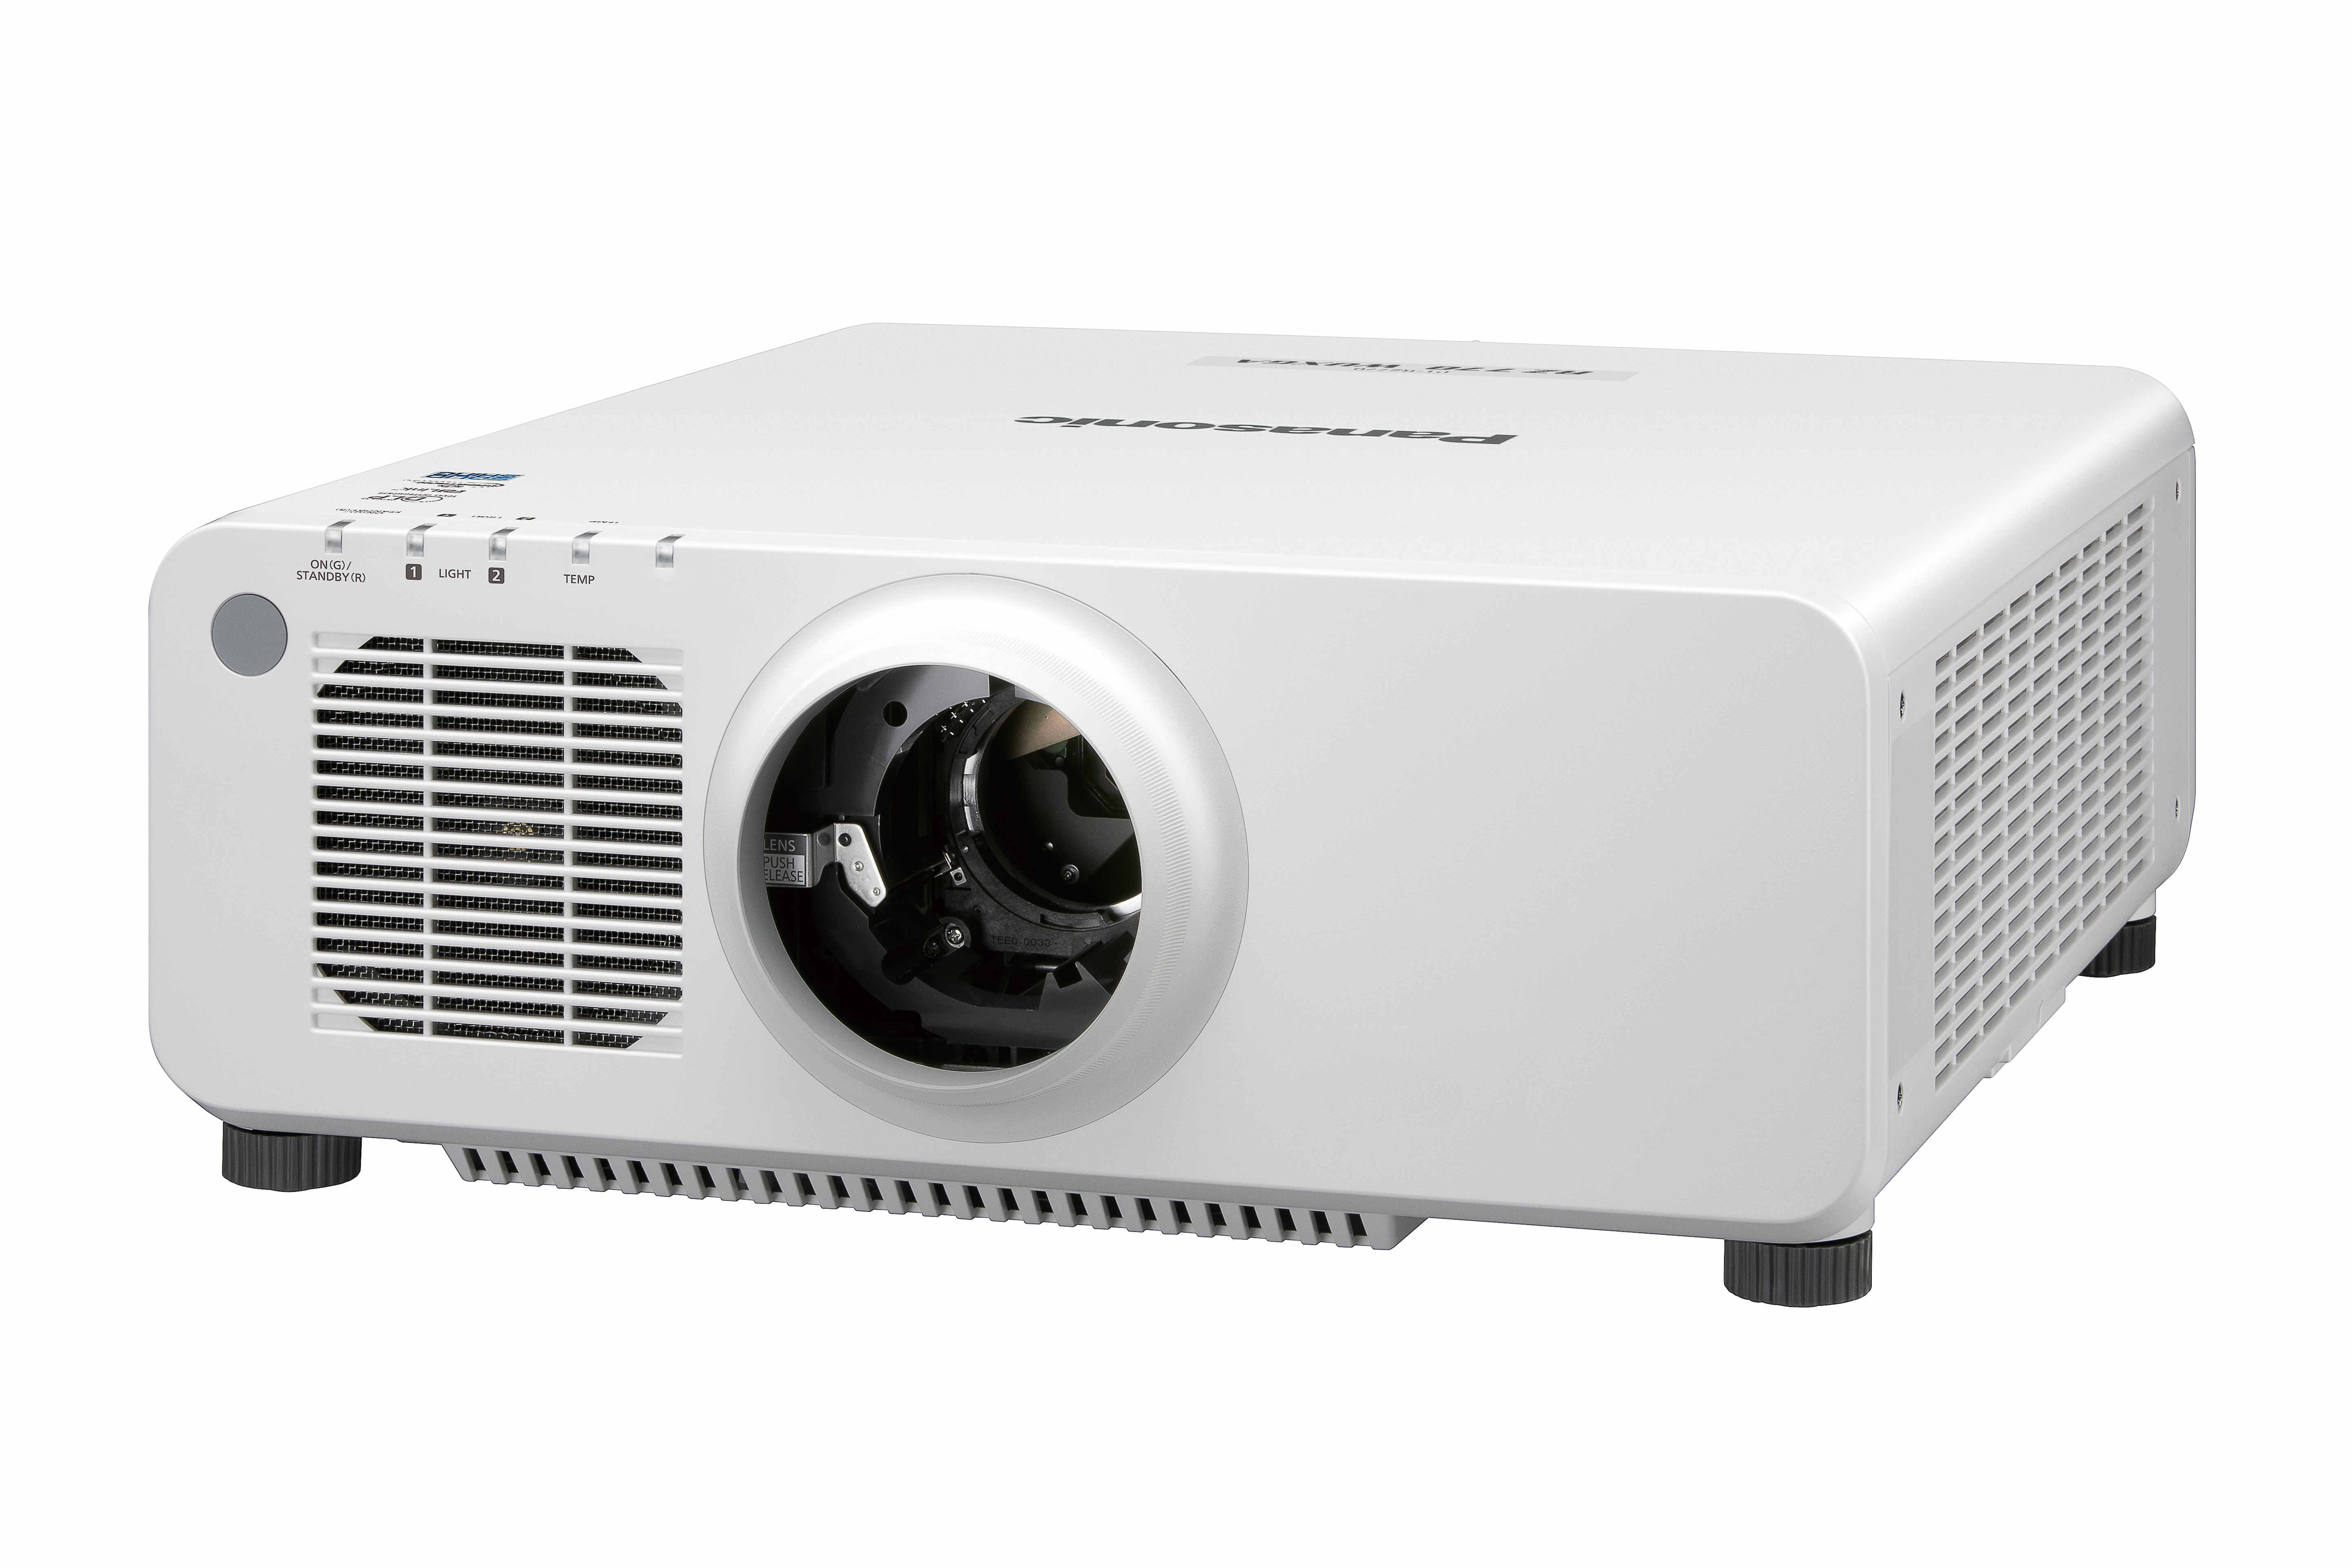 7200lm WUXGA Laser Projector in White with No Lens